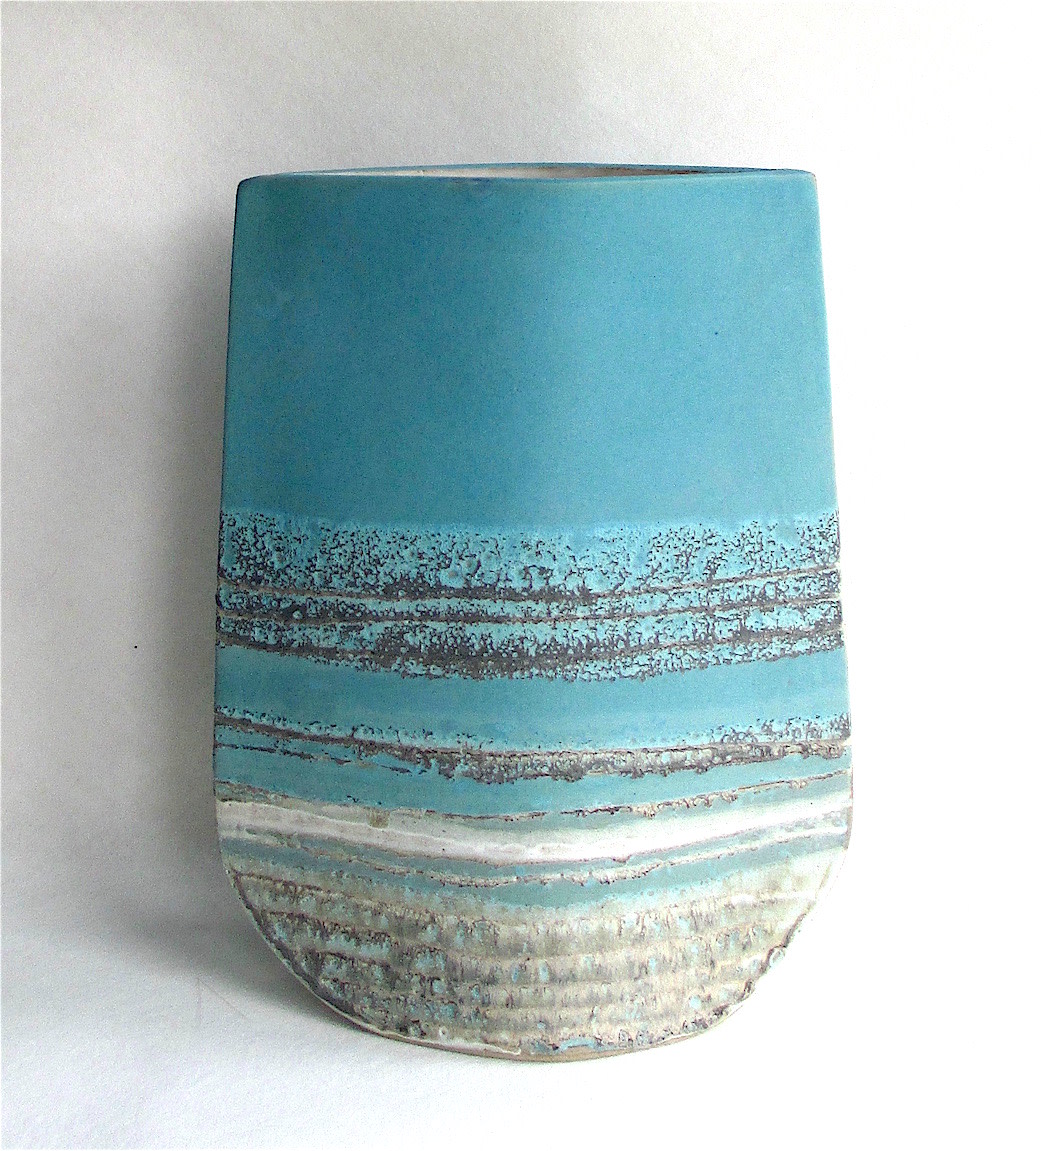 "<span class=""link fancybox-details-link""><a href=""/artists/44-sarah-perry/works/7439-sarah-perry-turquoise-totem-vessel-2020/"">View Detail Page</a></span><div class=""artist""><strong>Sarah Perry</strong></div> <div class=""title""><em>Turquoise Totem Vessel</em>, 2020</div> <div class=""signed_and_dated"">Impressed with the artist's seal mark 'SP'</div> <div class=""medium"">stoneware</div> <div class=""dimensions"">h. 32.5 cm x w. 22 cm x d. 9 cm</div><div class=""price"">£550.00</div><div class=""copyright_line"">Own Art: £55 x 10 months, 0% APR</div>"